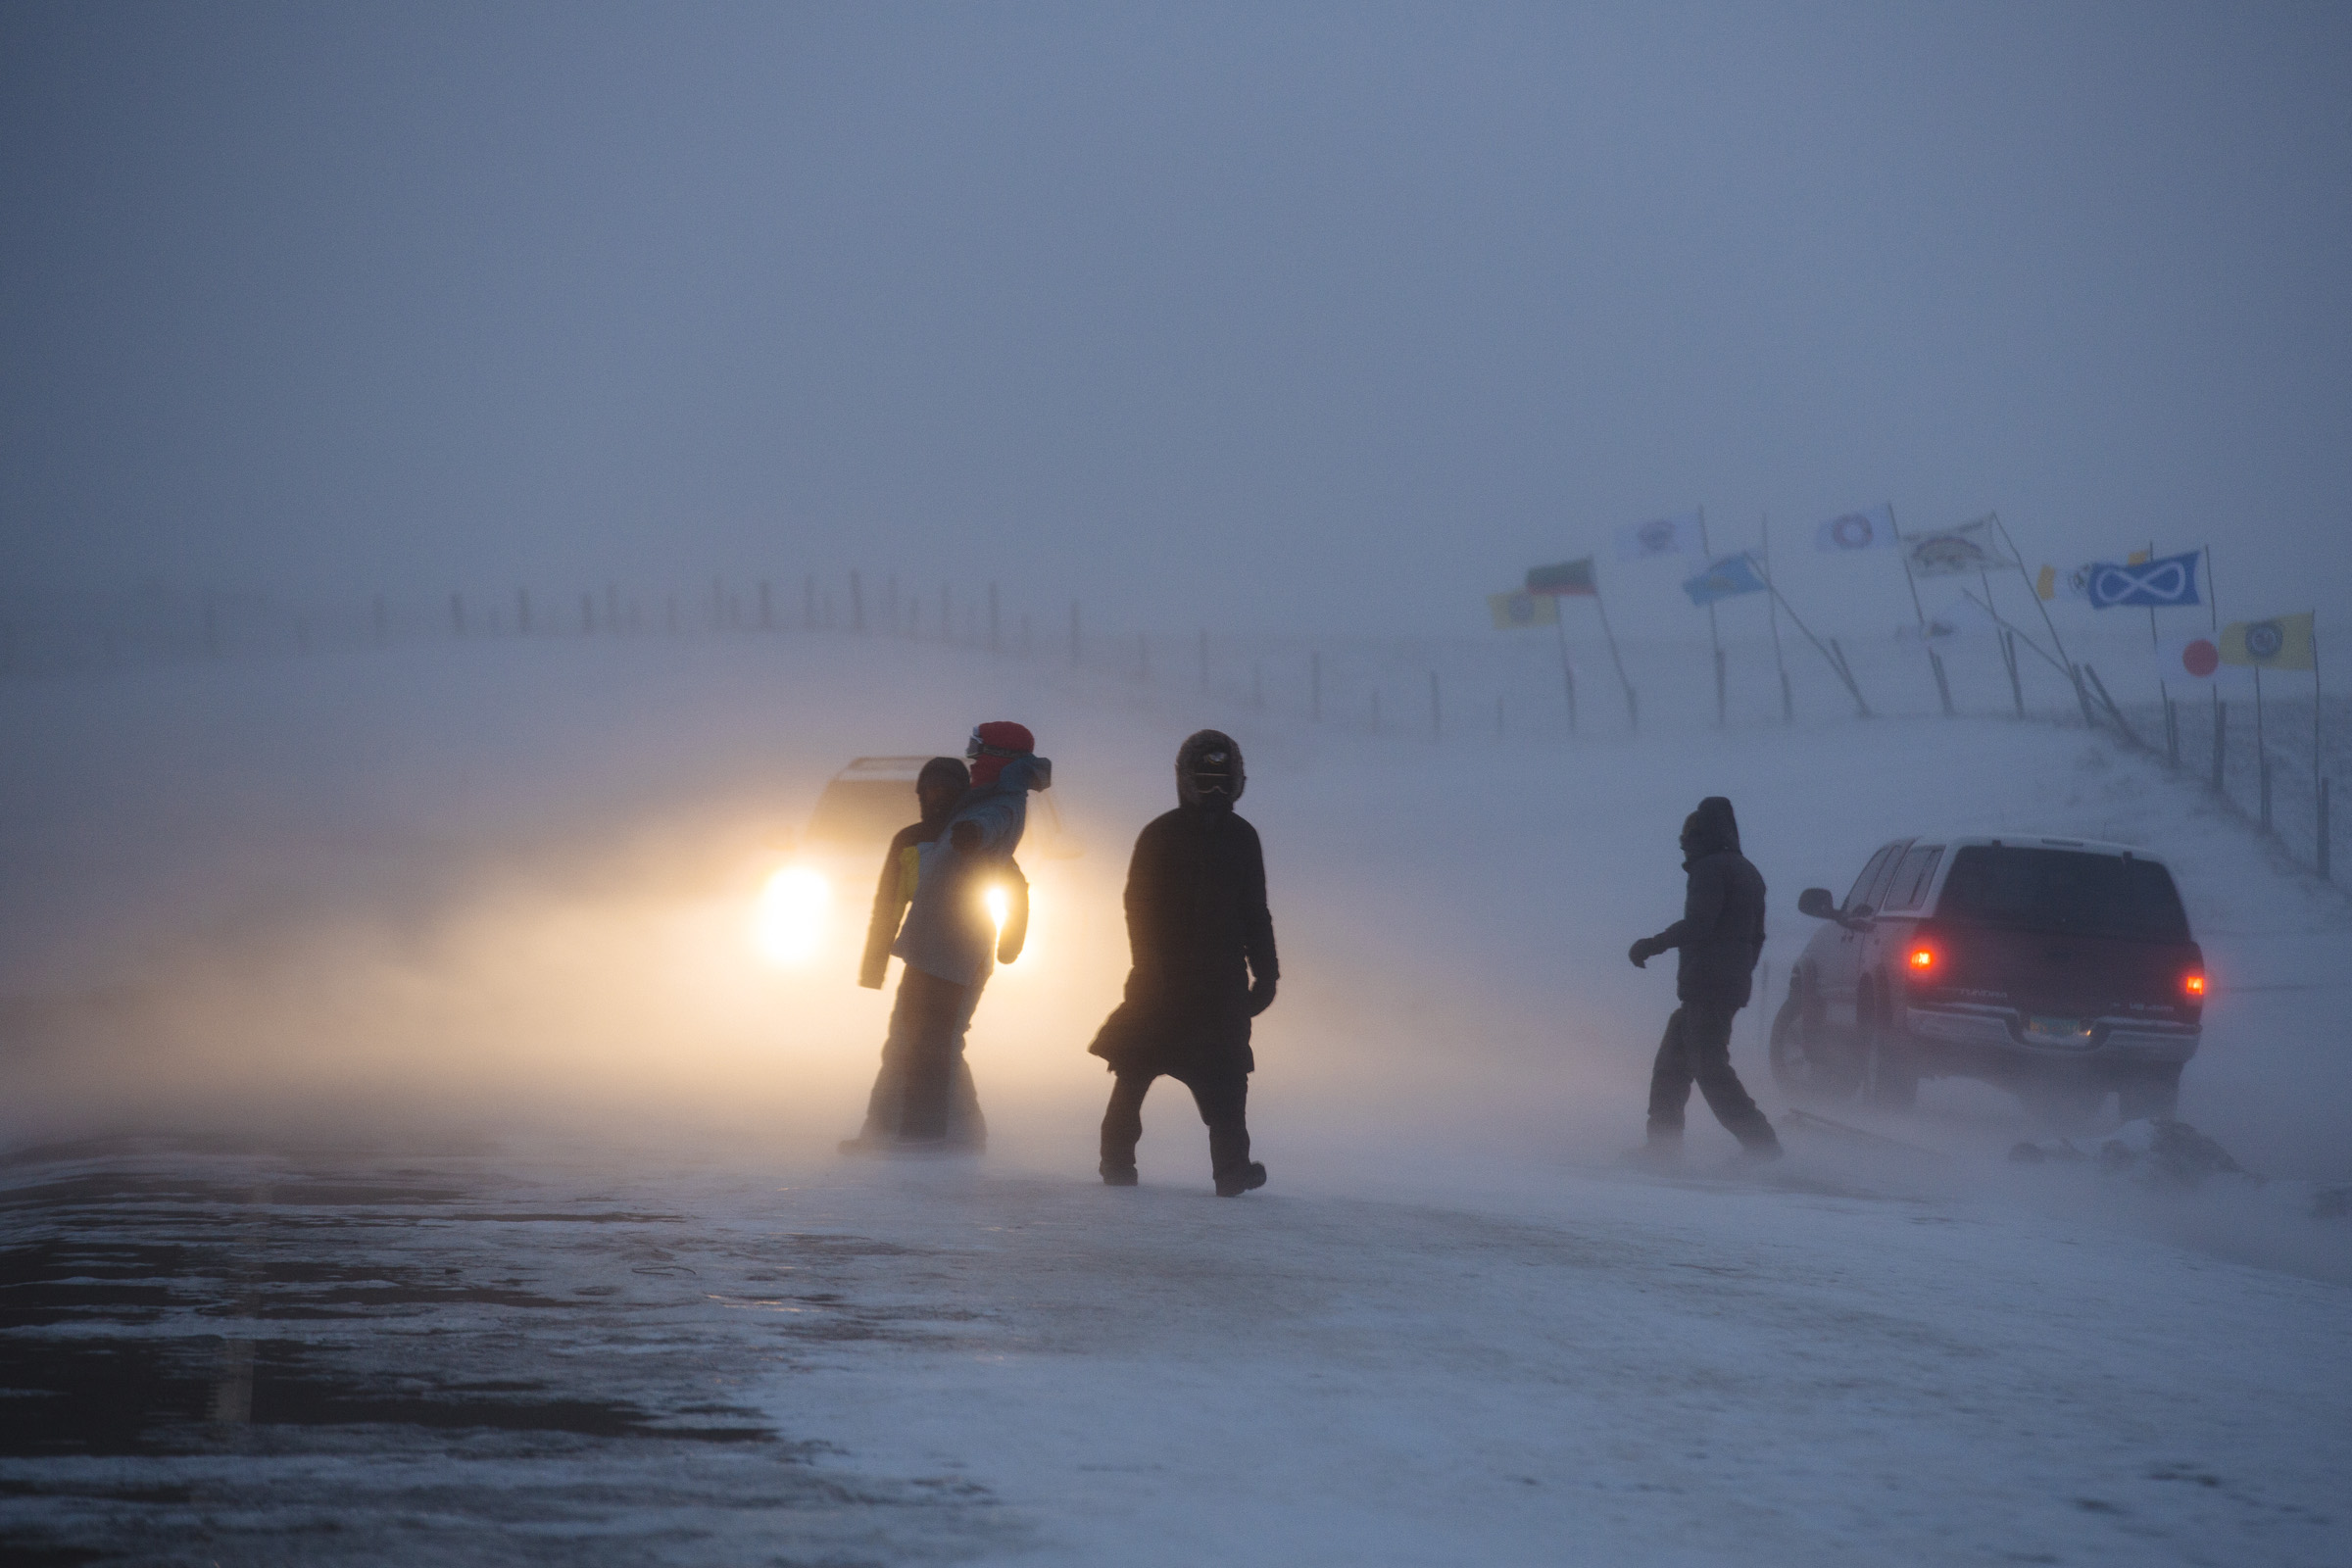 People struggle to walk during a snowstorm on Highway 1806, outside the Oceti Sakowin Camp on Wednesday, Dec. 7, 2016. (Photo by Angus Mordant/GroundTruth)